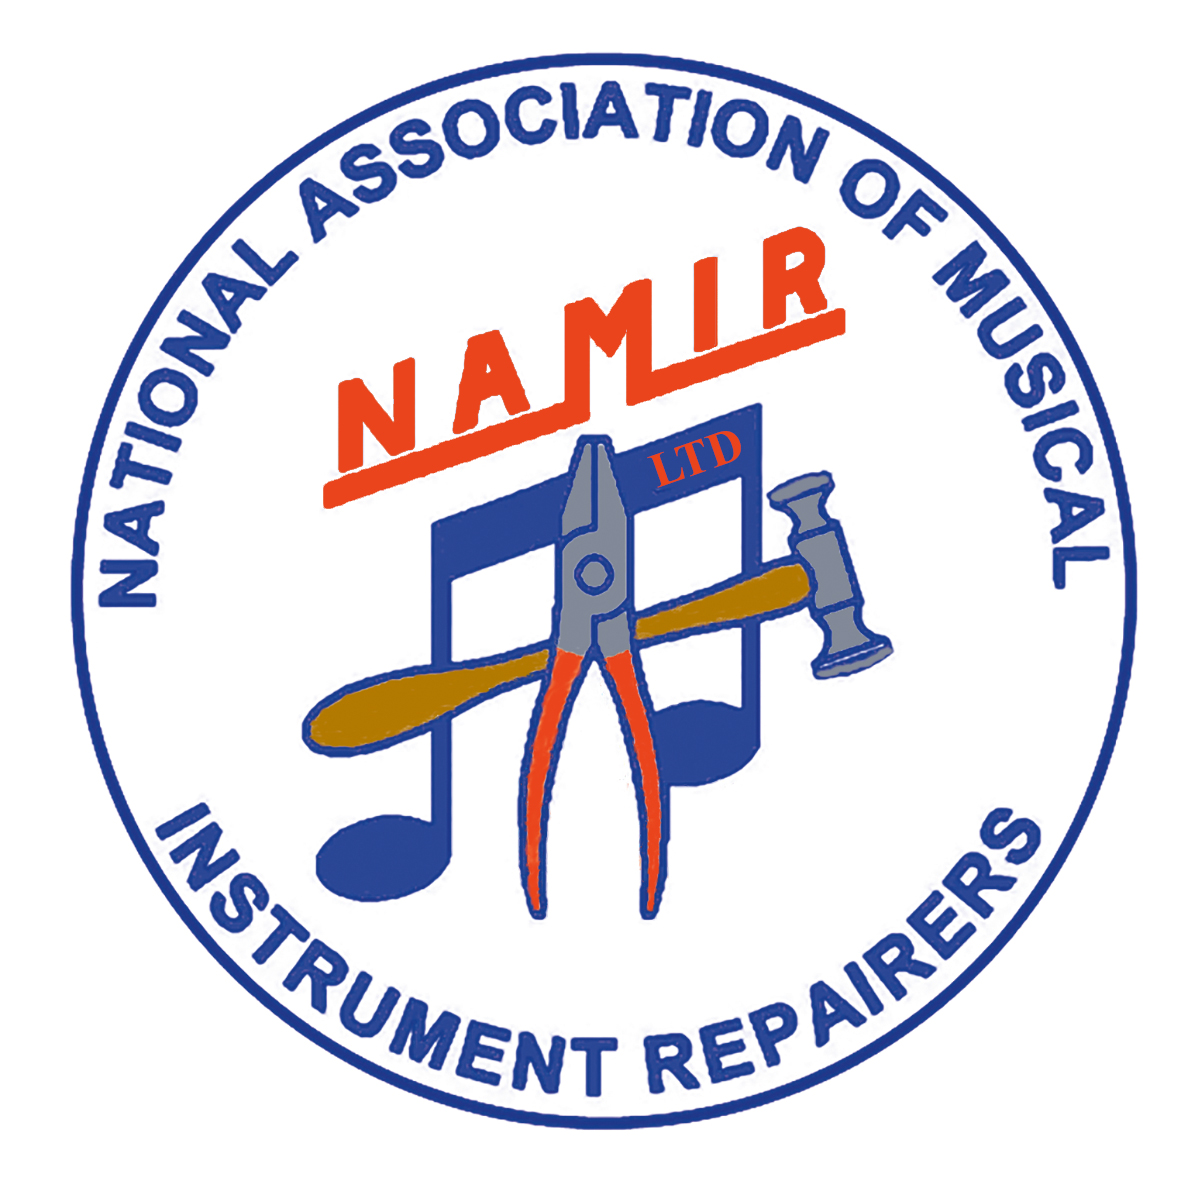 Namir Ltd Logo